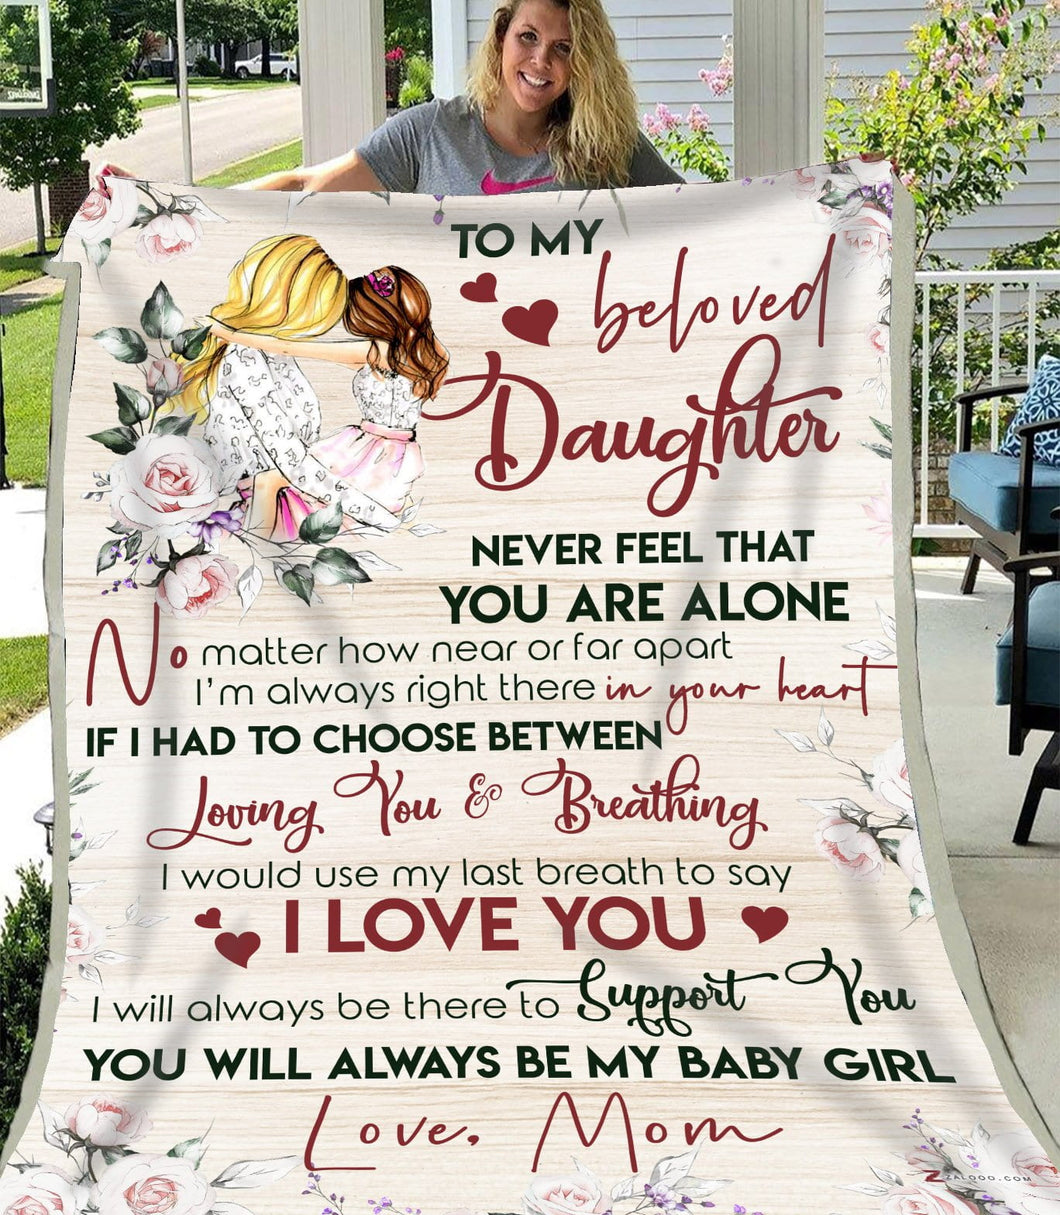 Blanket To My Beloved Daughter My baby girl